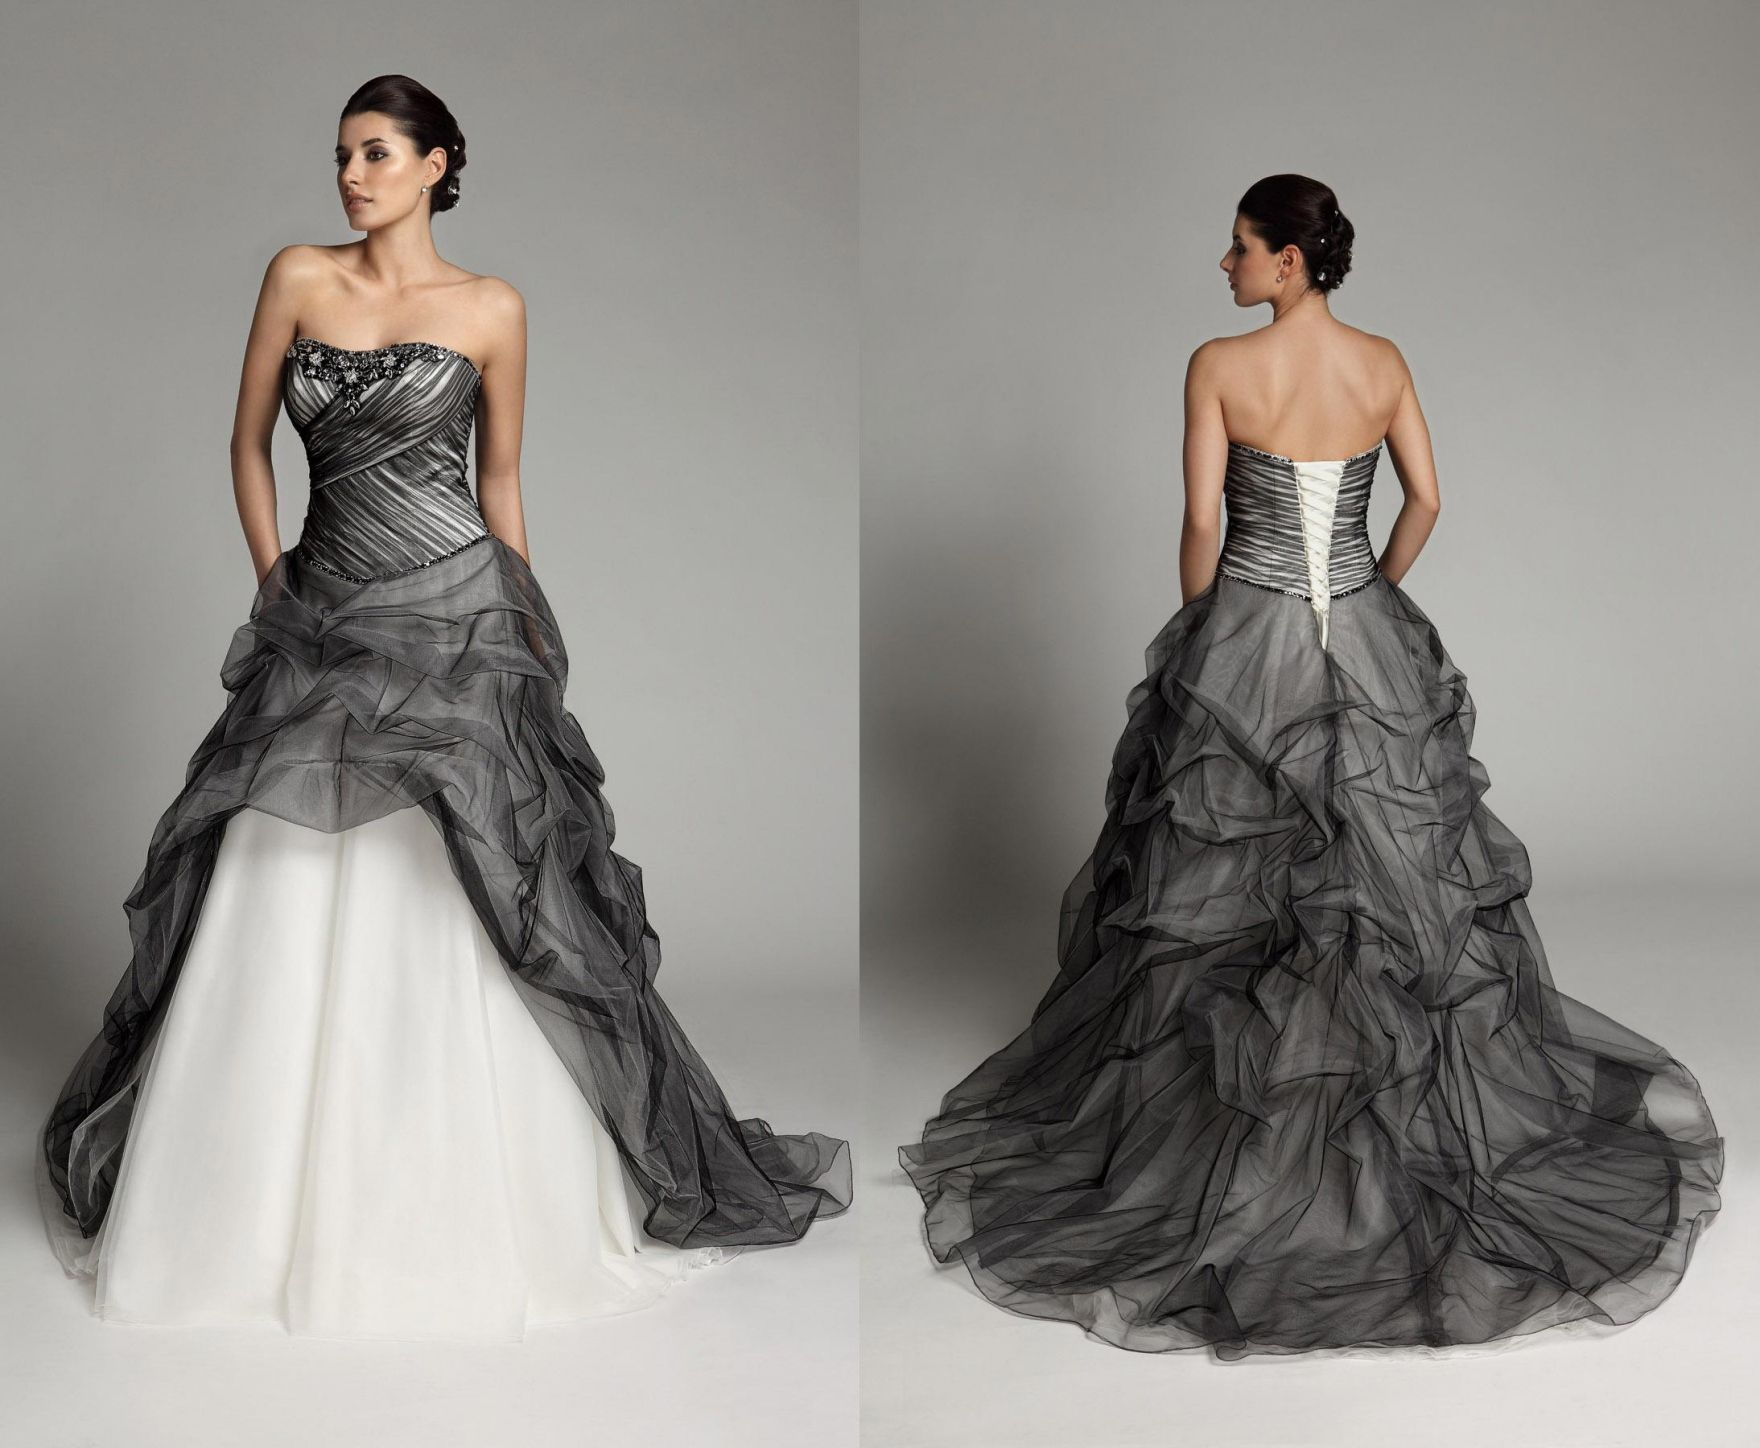 100+ White and Black Wedding Dresses for Sale - Country Dresses for ...